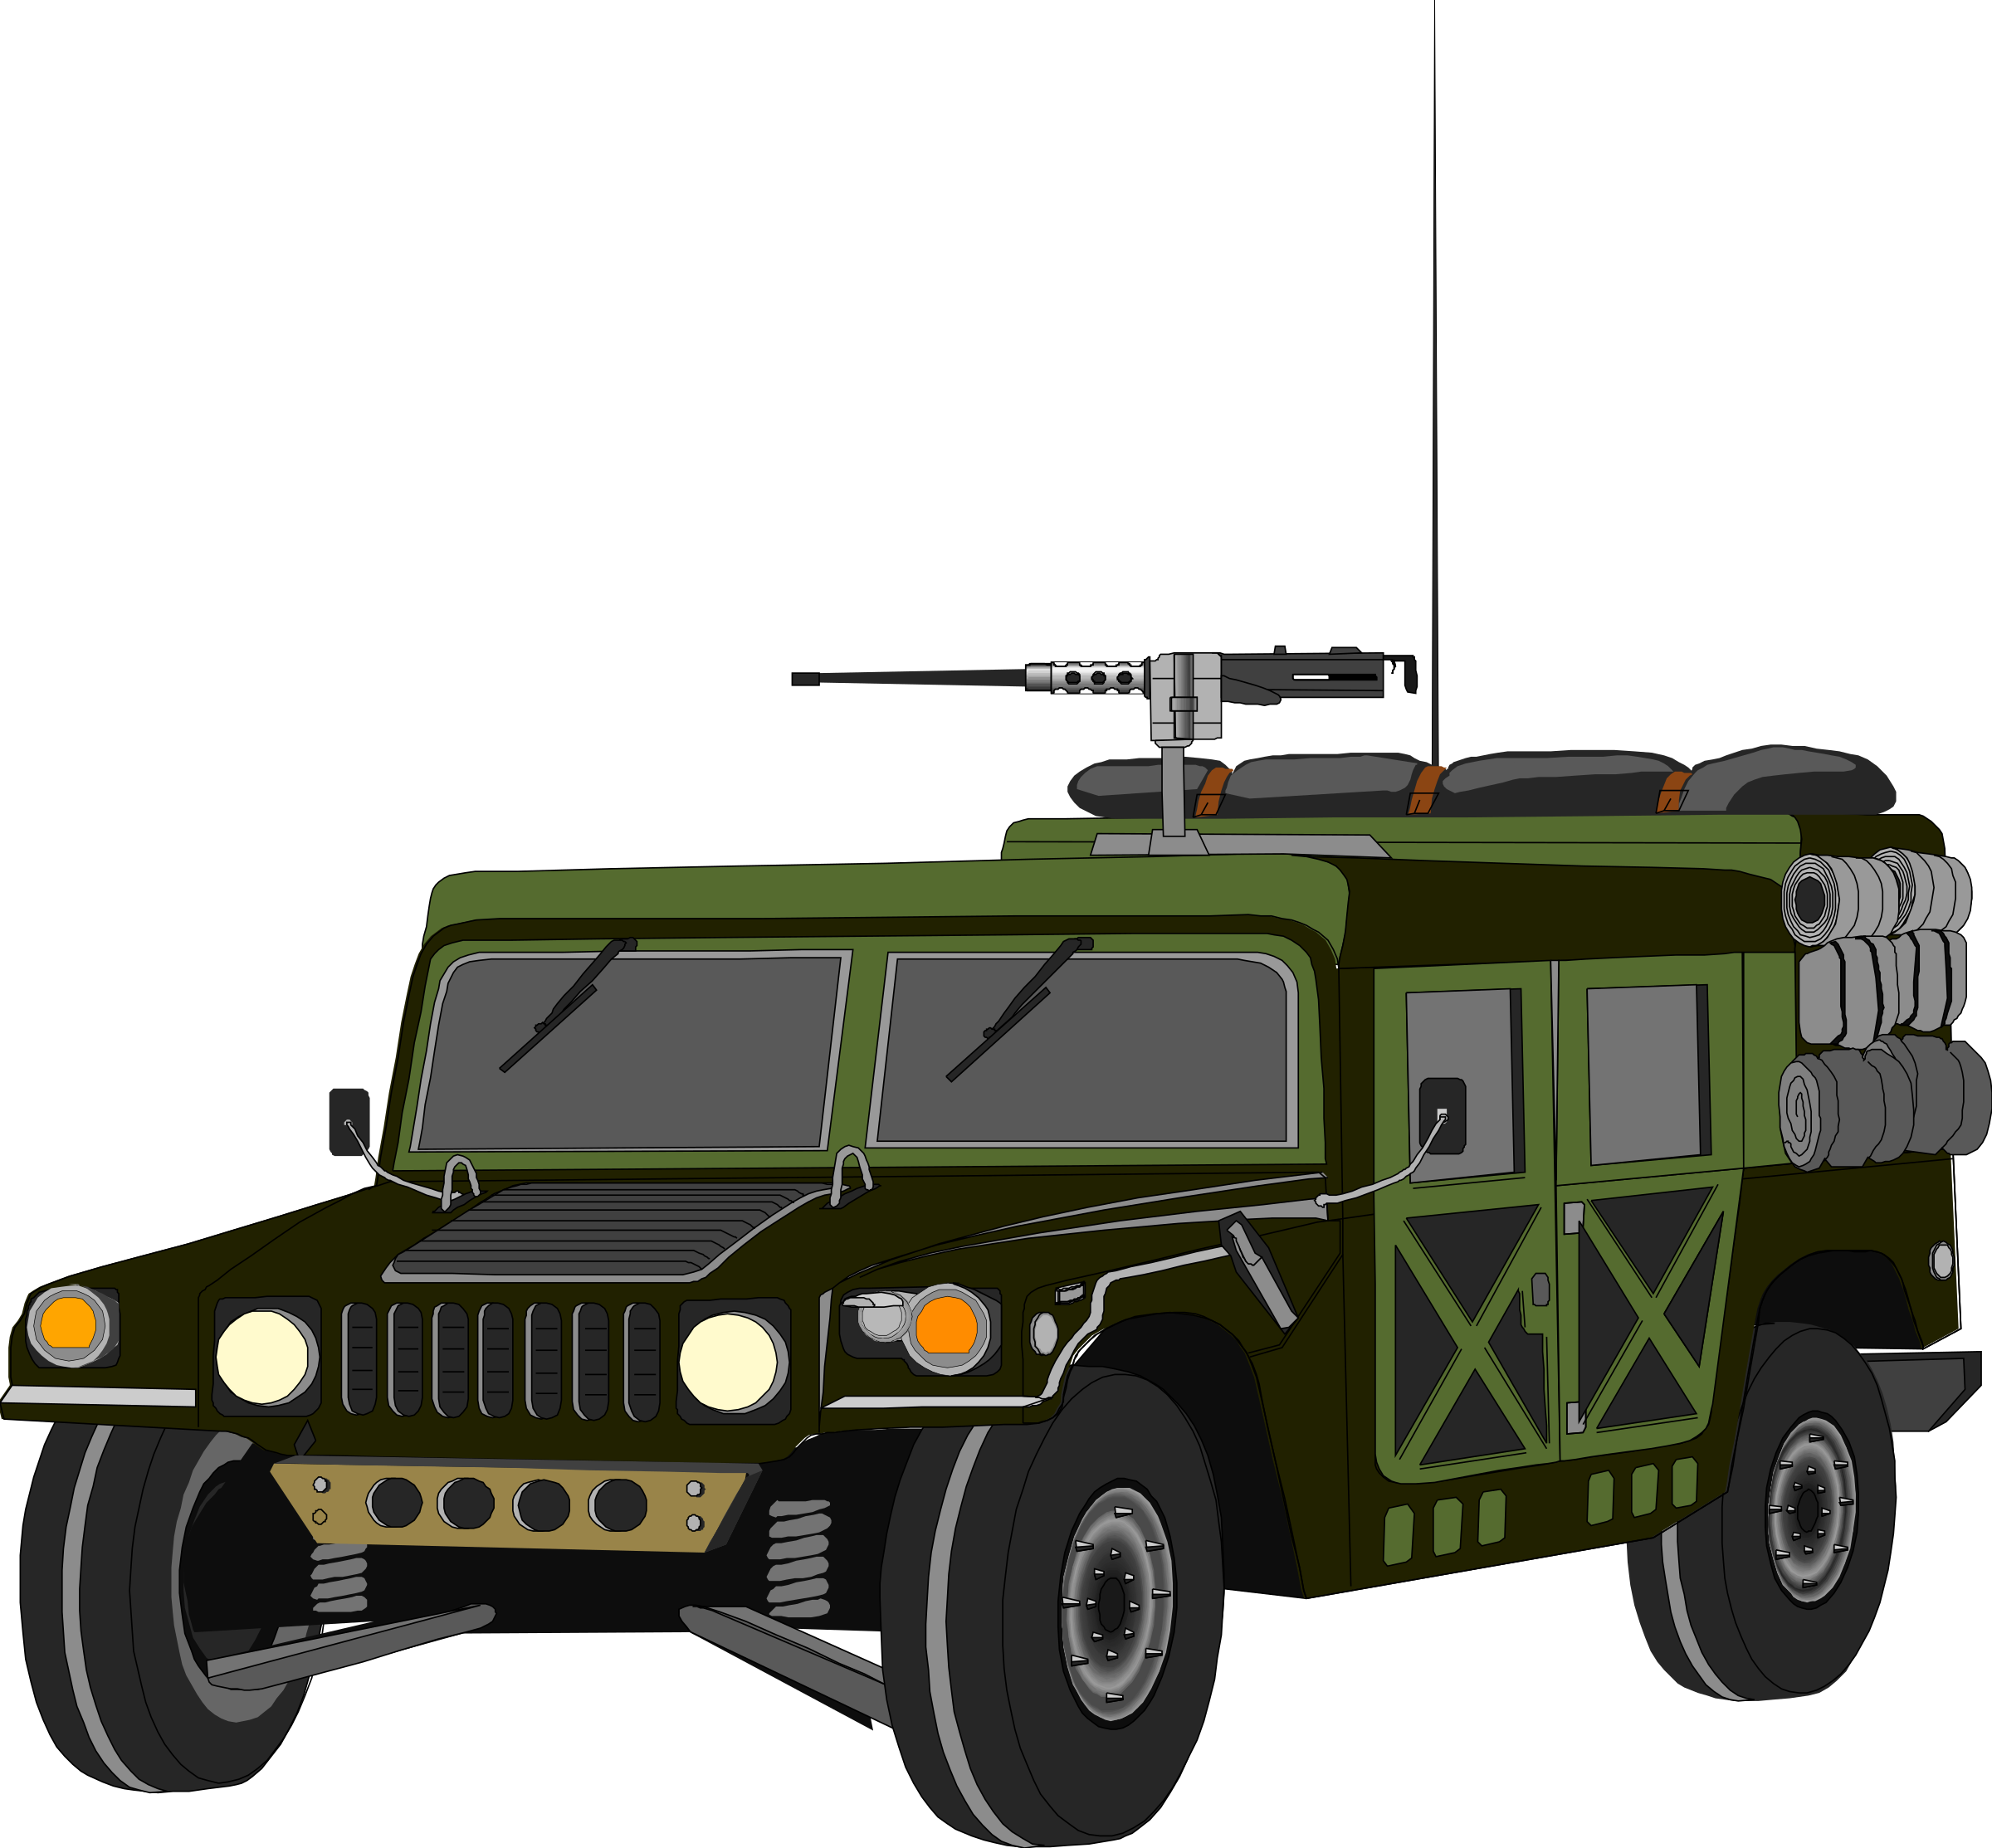 Png images image royal. Military clipart jeep army